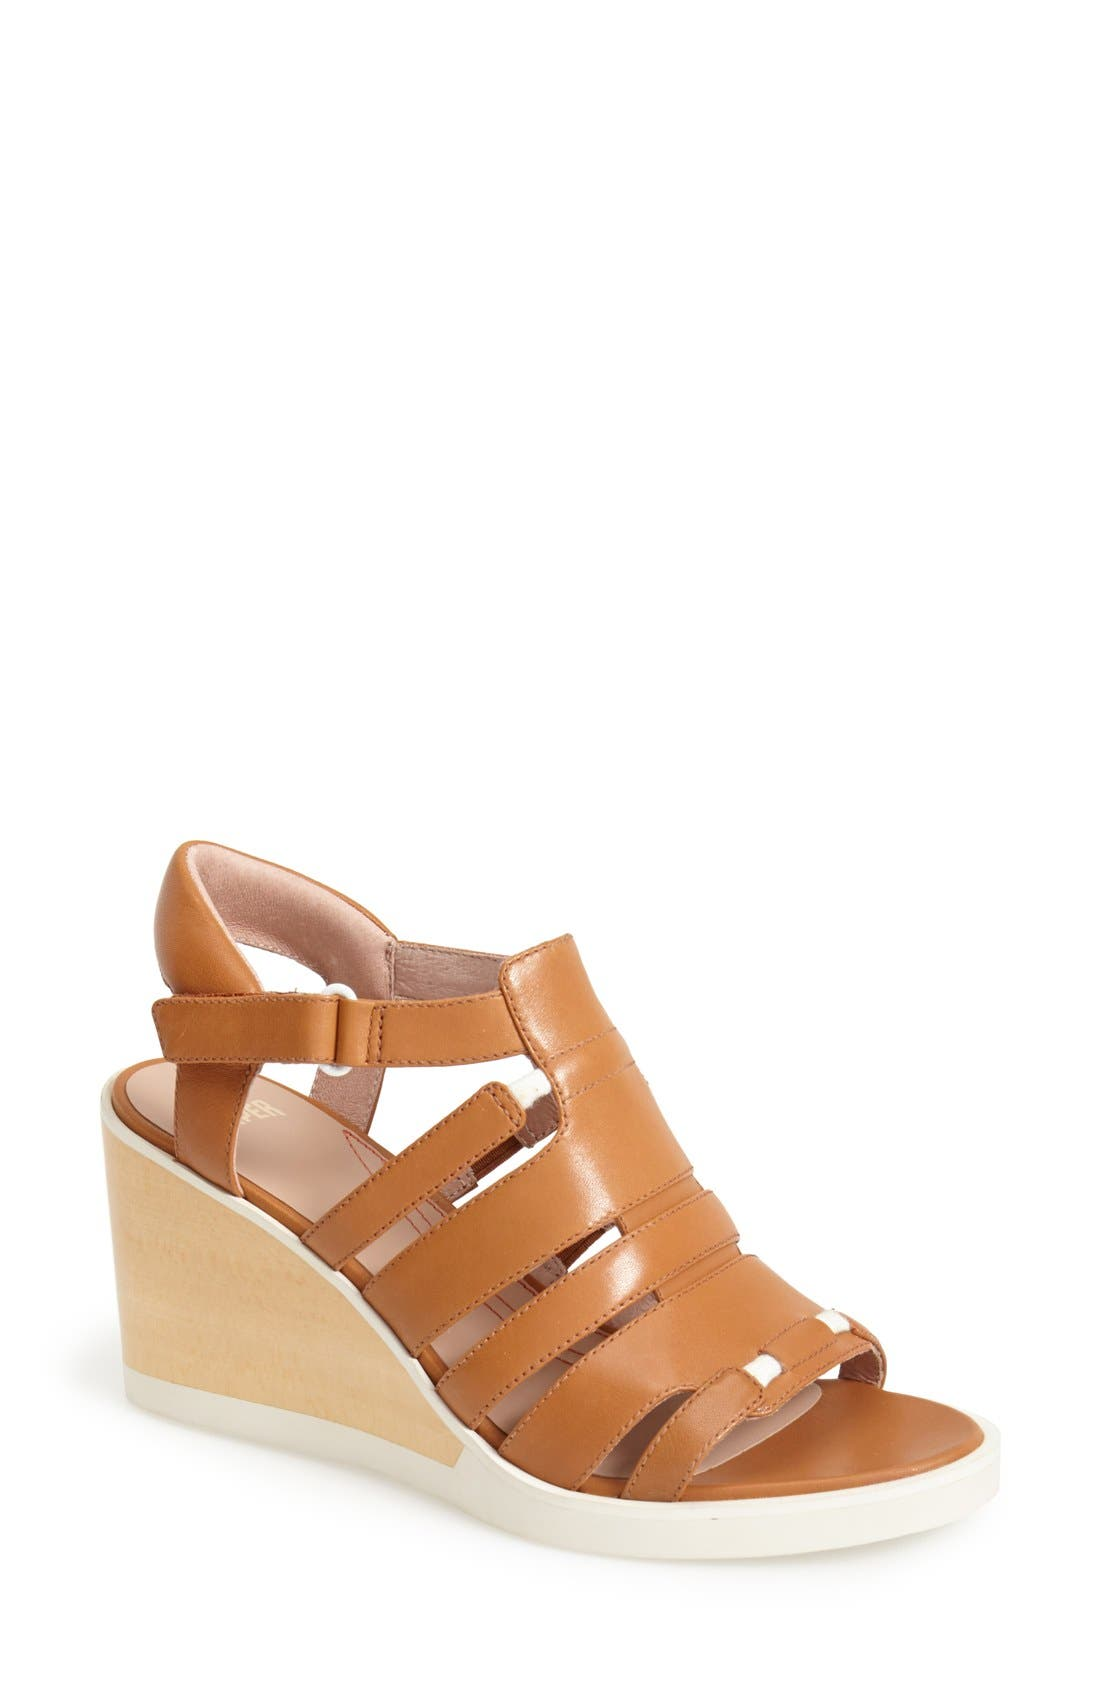 Alternate Image 1 Selected - Camper 'Limi' Strappy Wedge Sandal (Women)